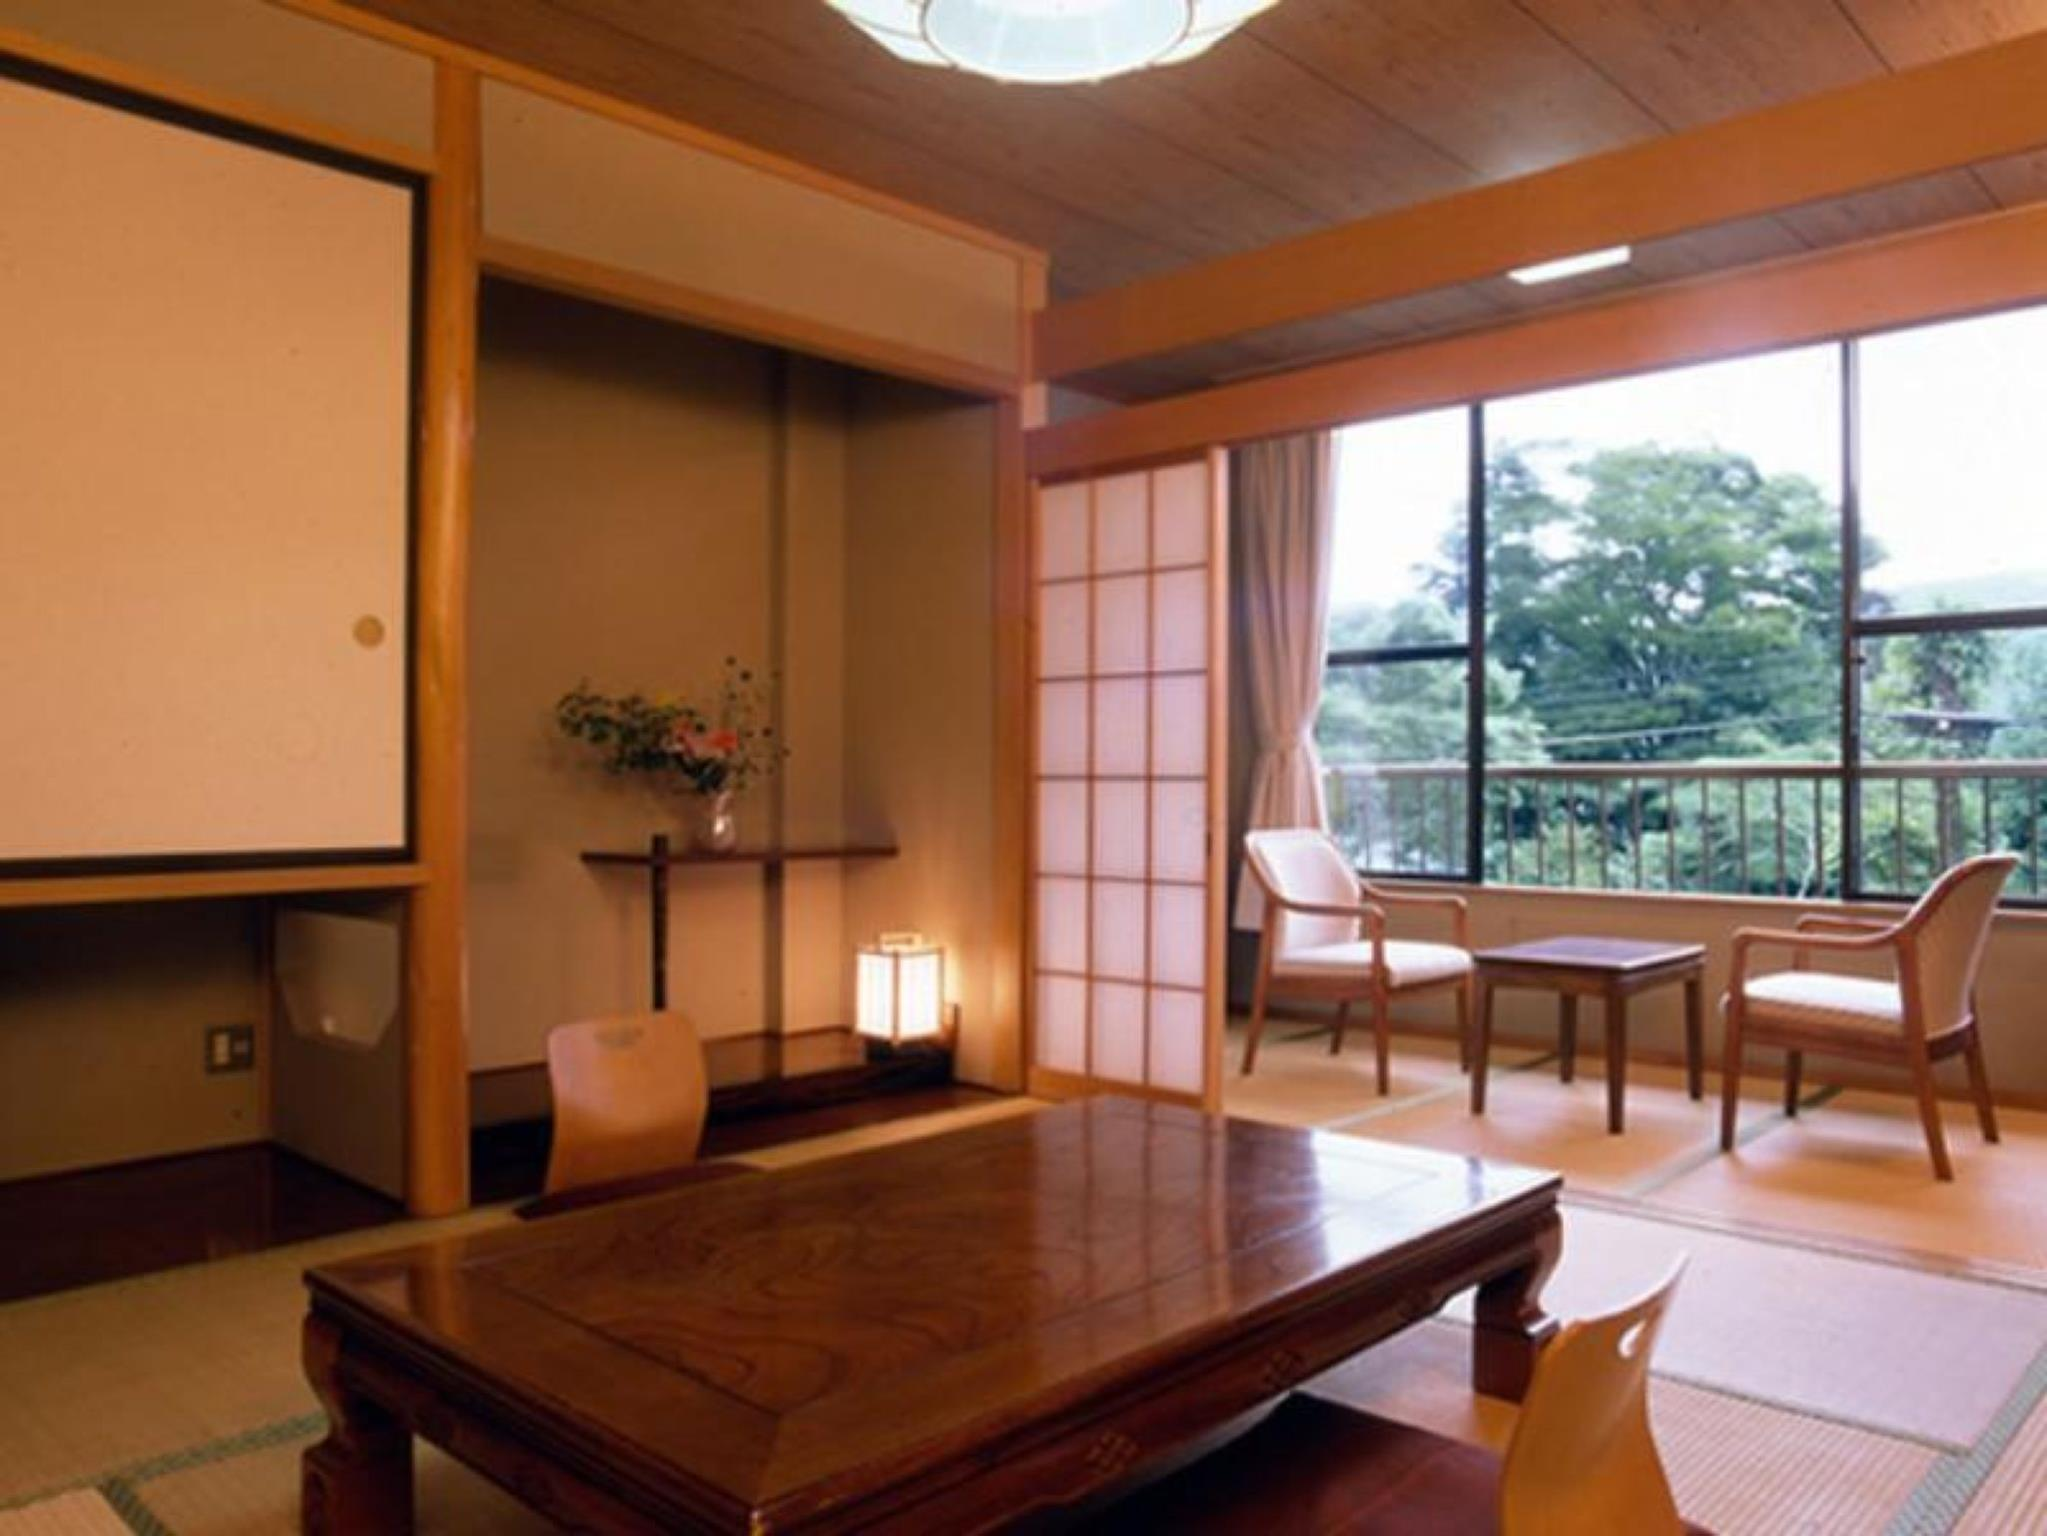 和室(共同バスルーム) (Japanese Style with Shared Bathroom)